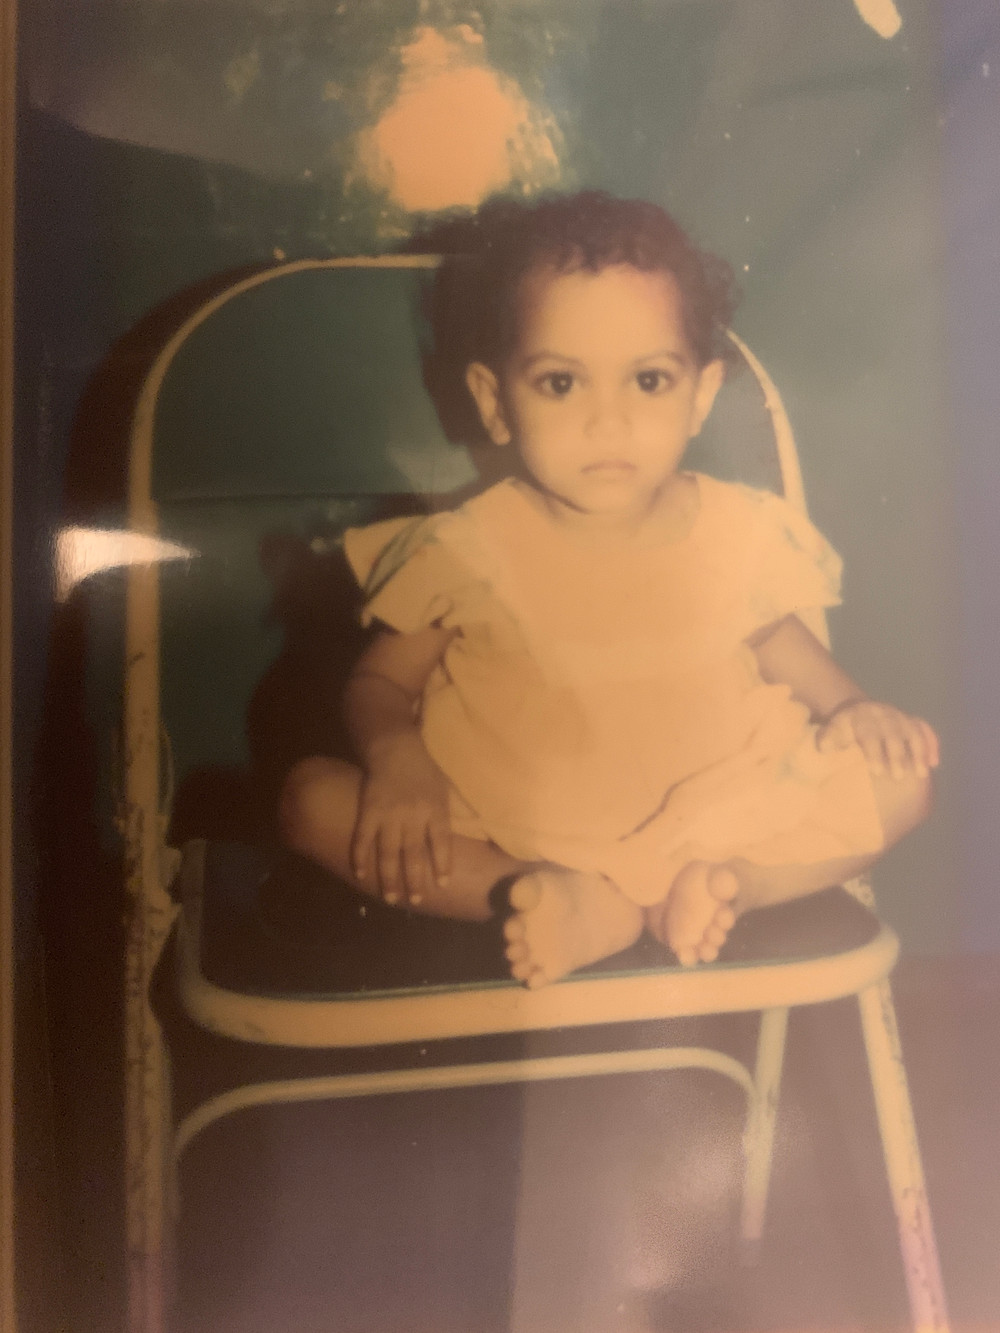 Baby Lata sitting on a chair